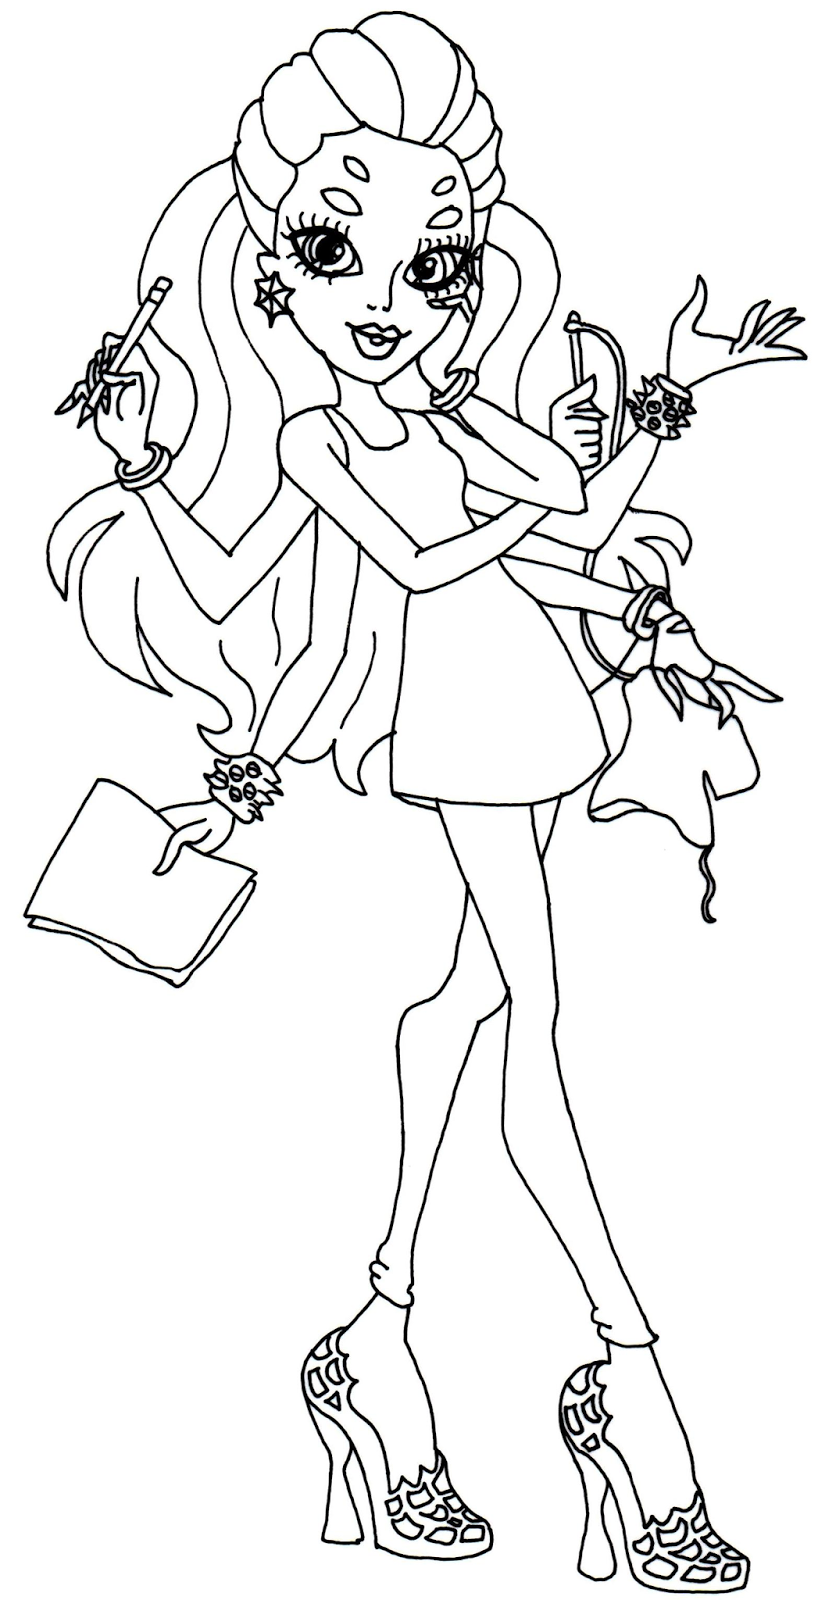 coloring pages monster high venus dudeindisneycom - Coloring Pages Monster High Venus